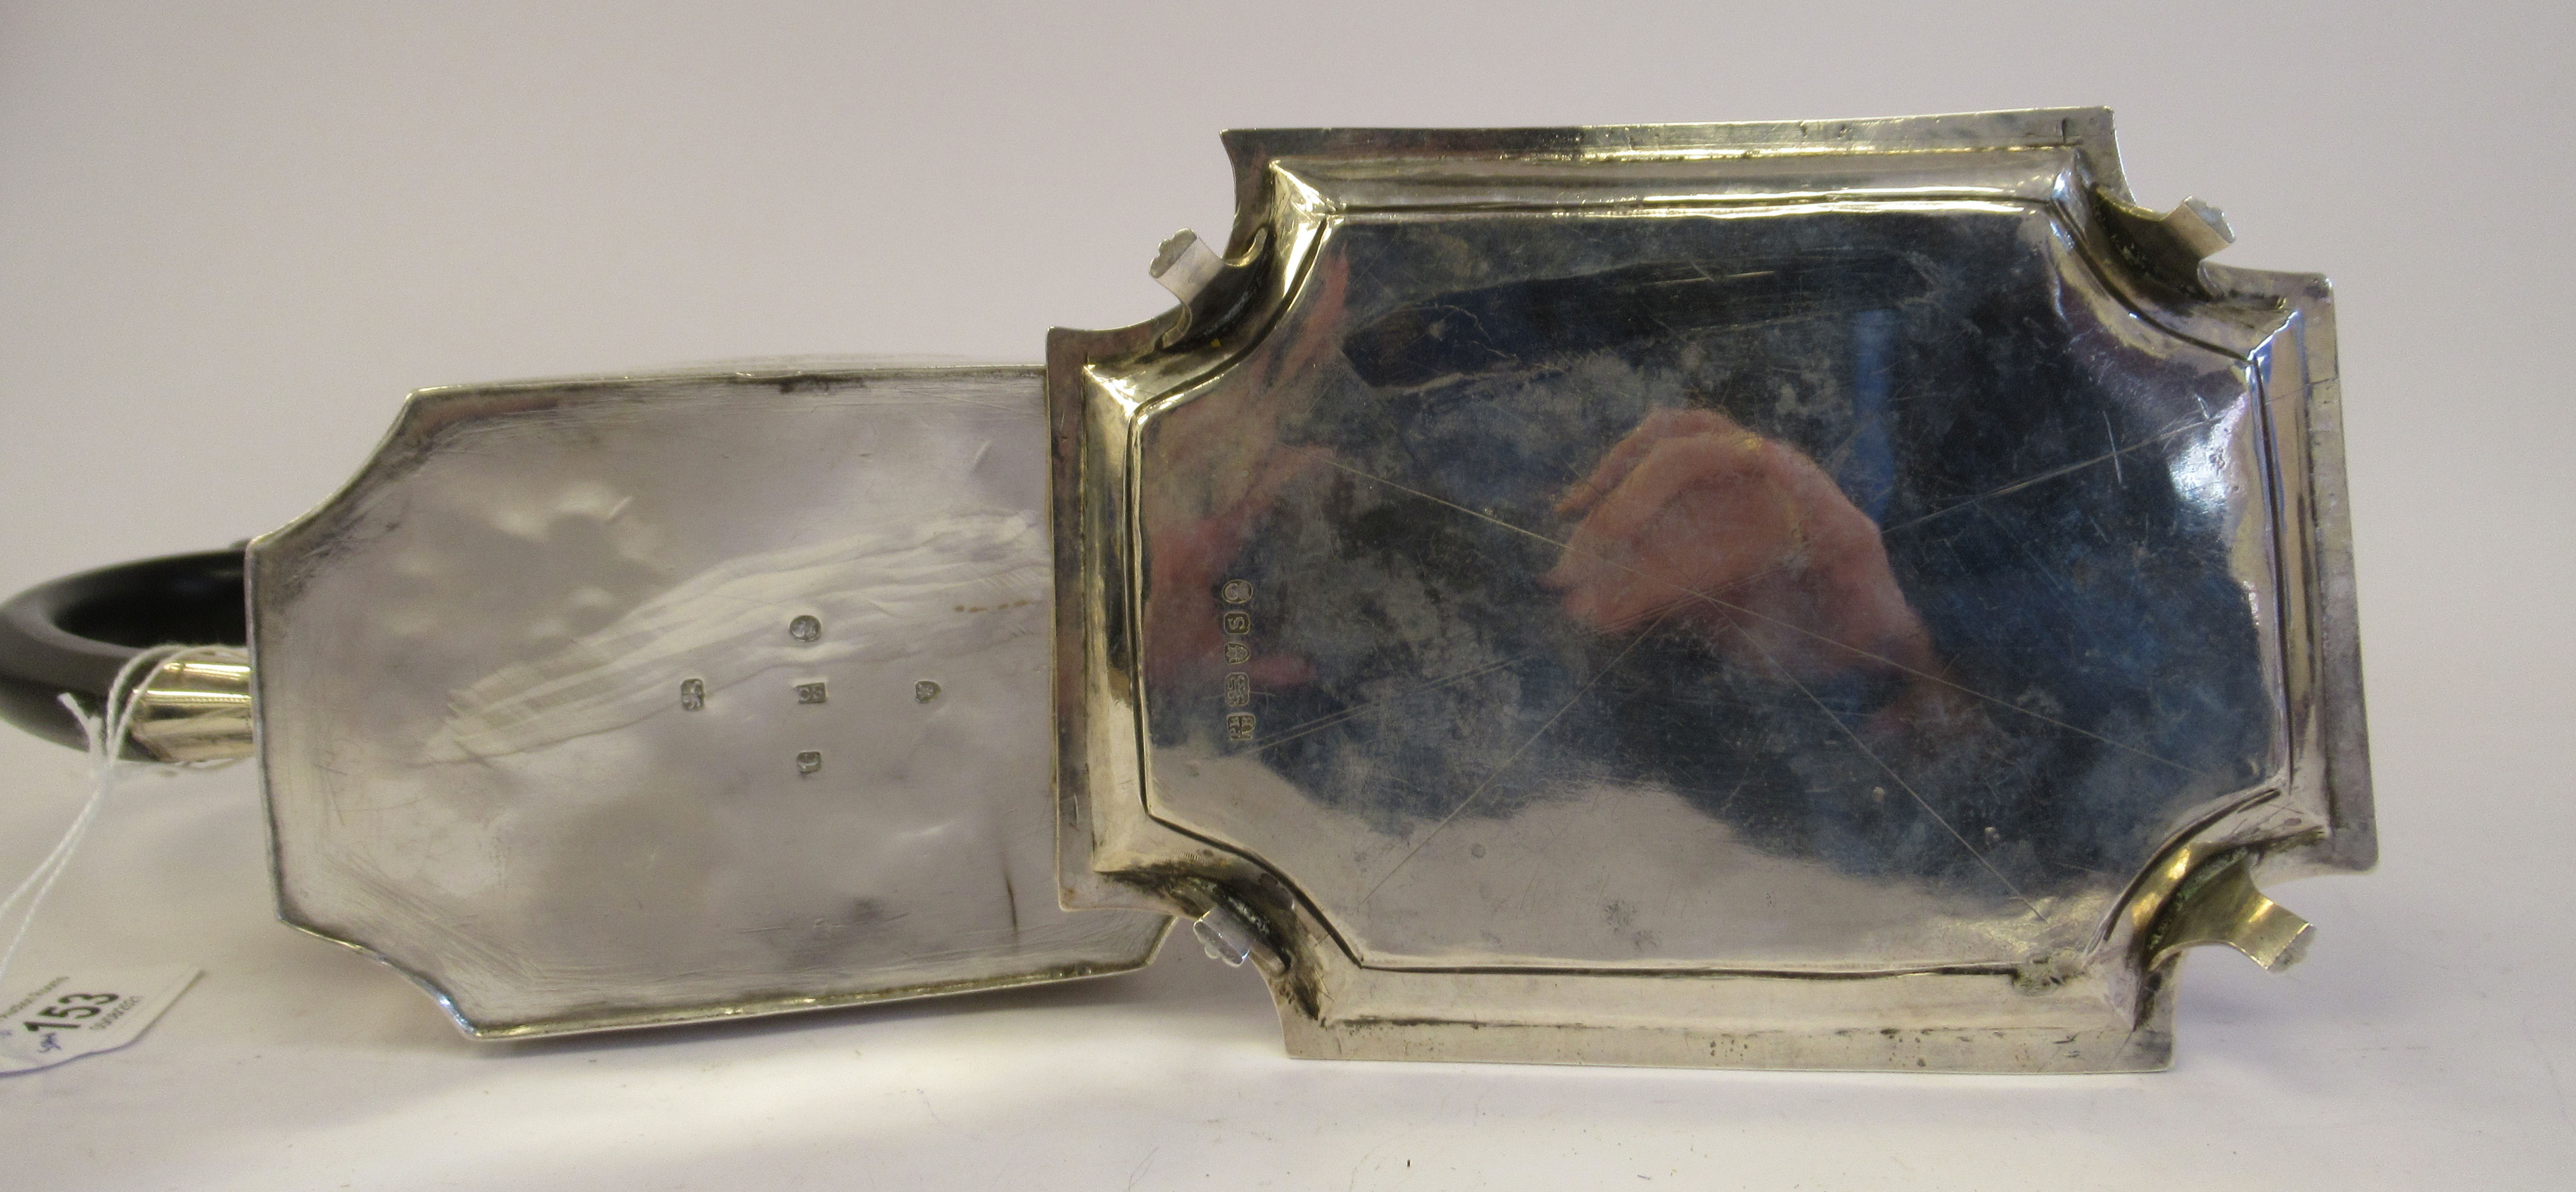 A George III silver teapot of straight sided, incurved box design, having an angled straight, - Image 5 of 9